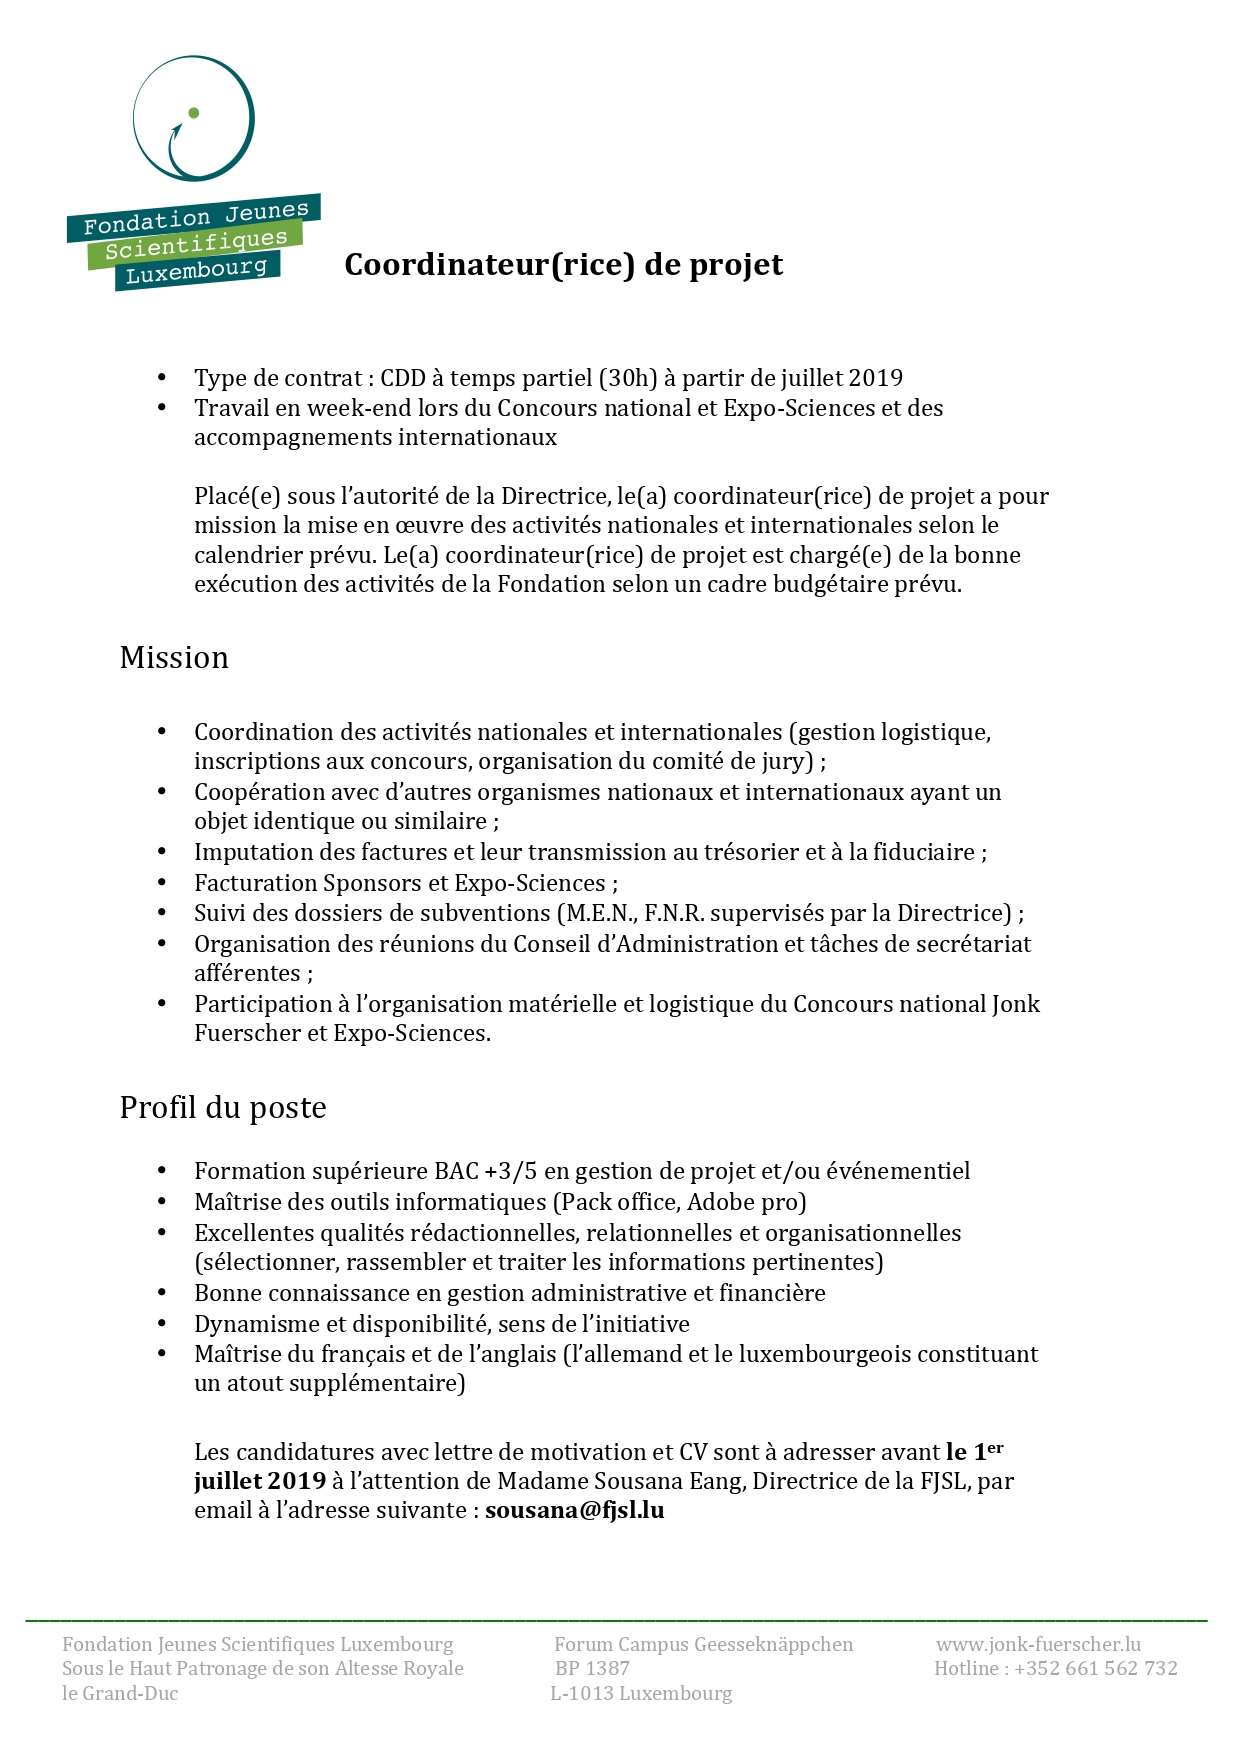 FJSL_Job description_Coordination projet_pages-to-jpg-0001.jpg